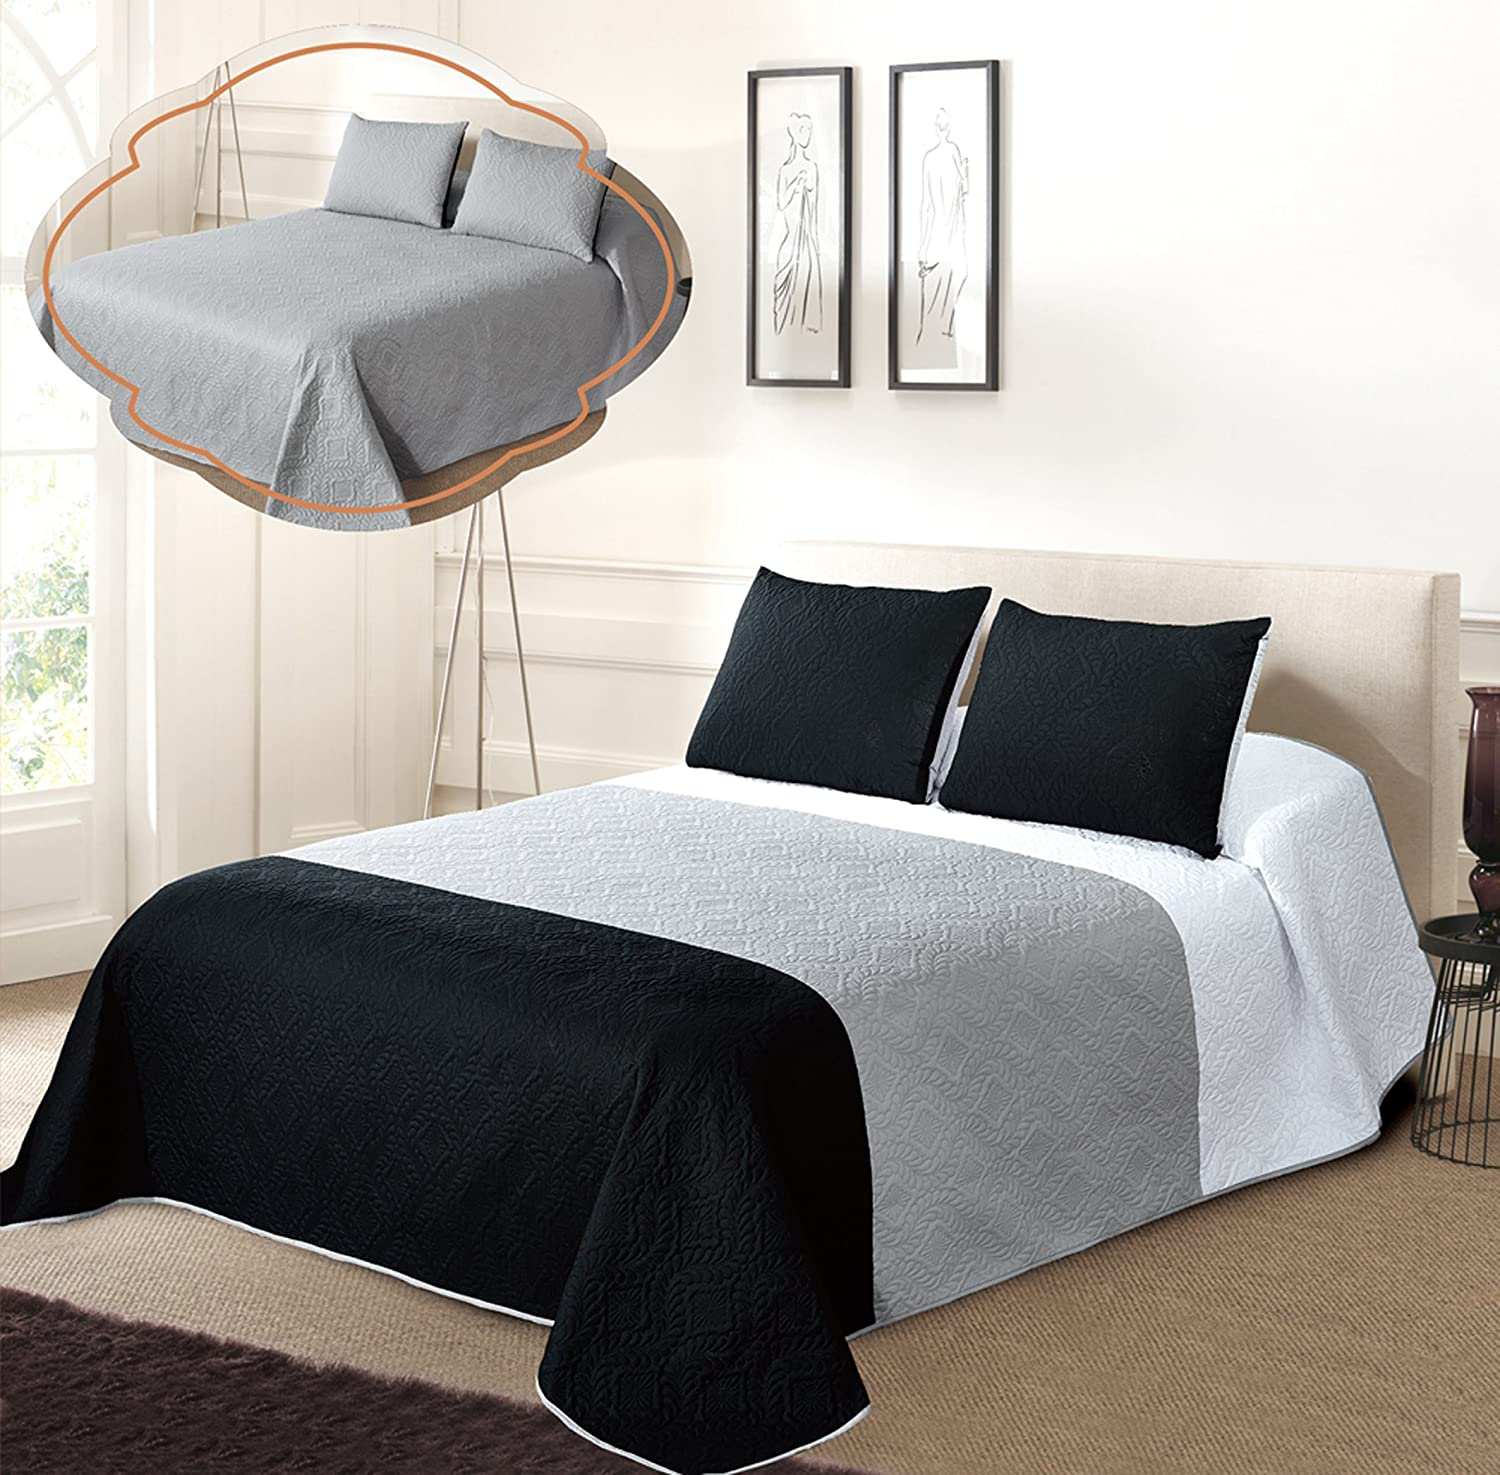 3pc Solid Three Color Combination Reversible Bedspread Set FULL / QUEEN, White/Grey/Black